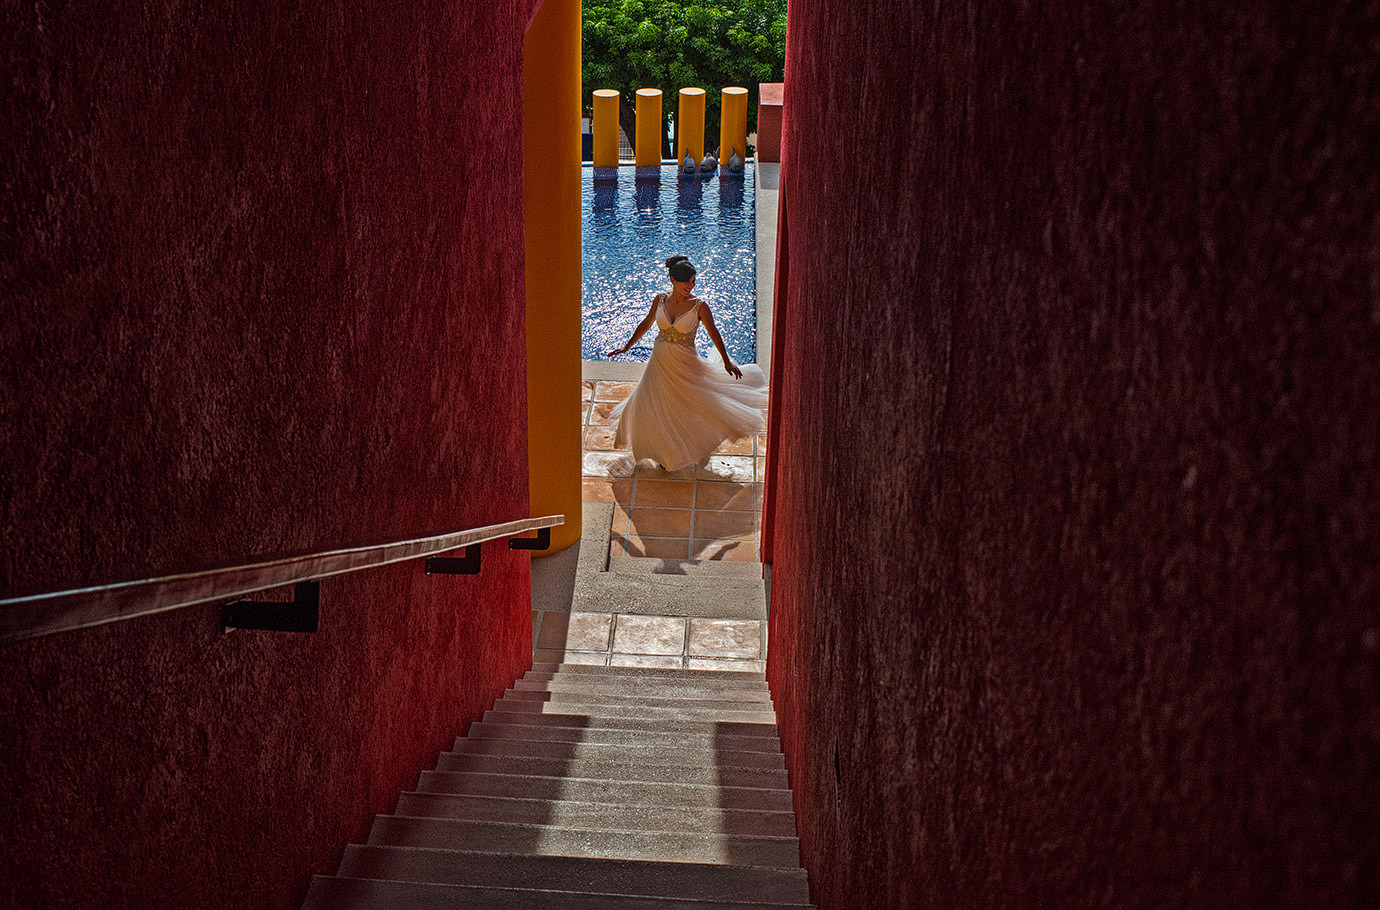 Mexico Wedding Photographers, Destination Weddings, Isla Mujeres, Cancun, Travel, Jenn Nauss, Cooked Photography